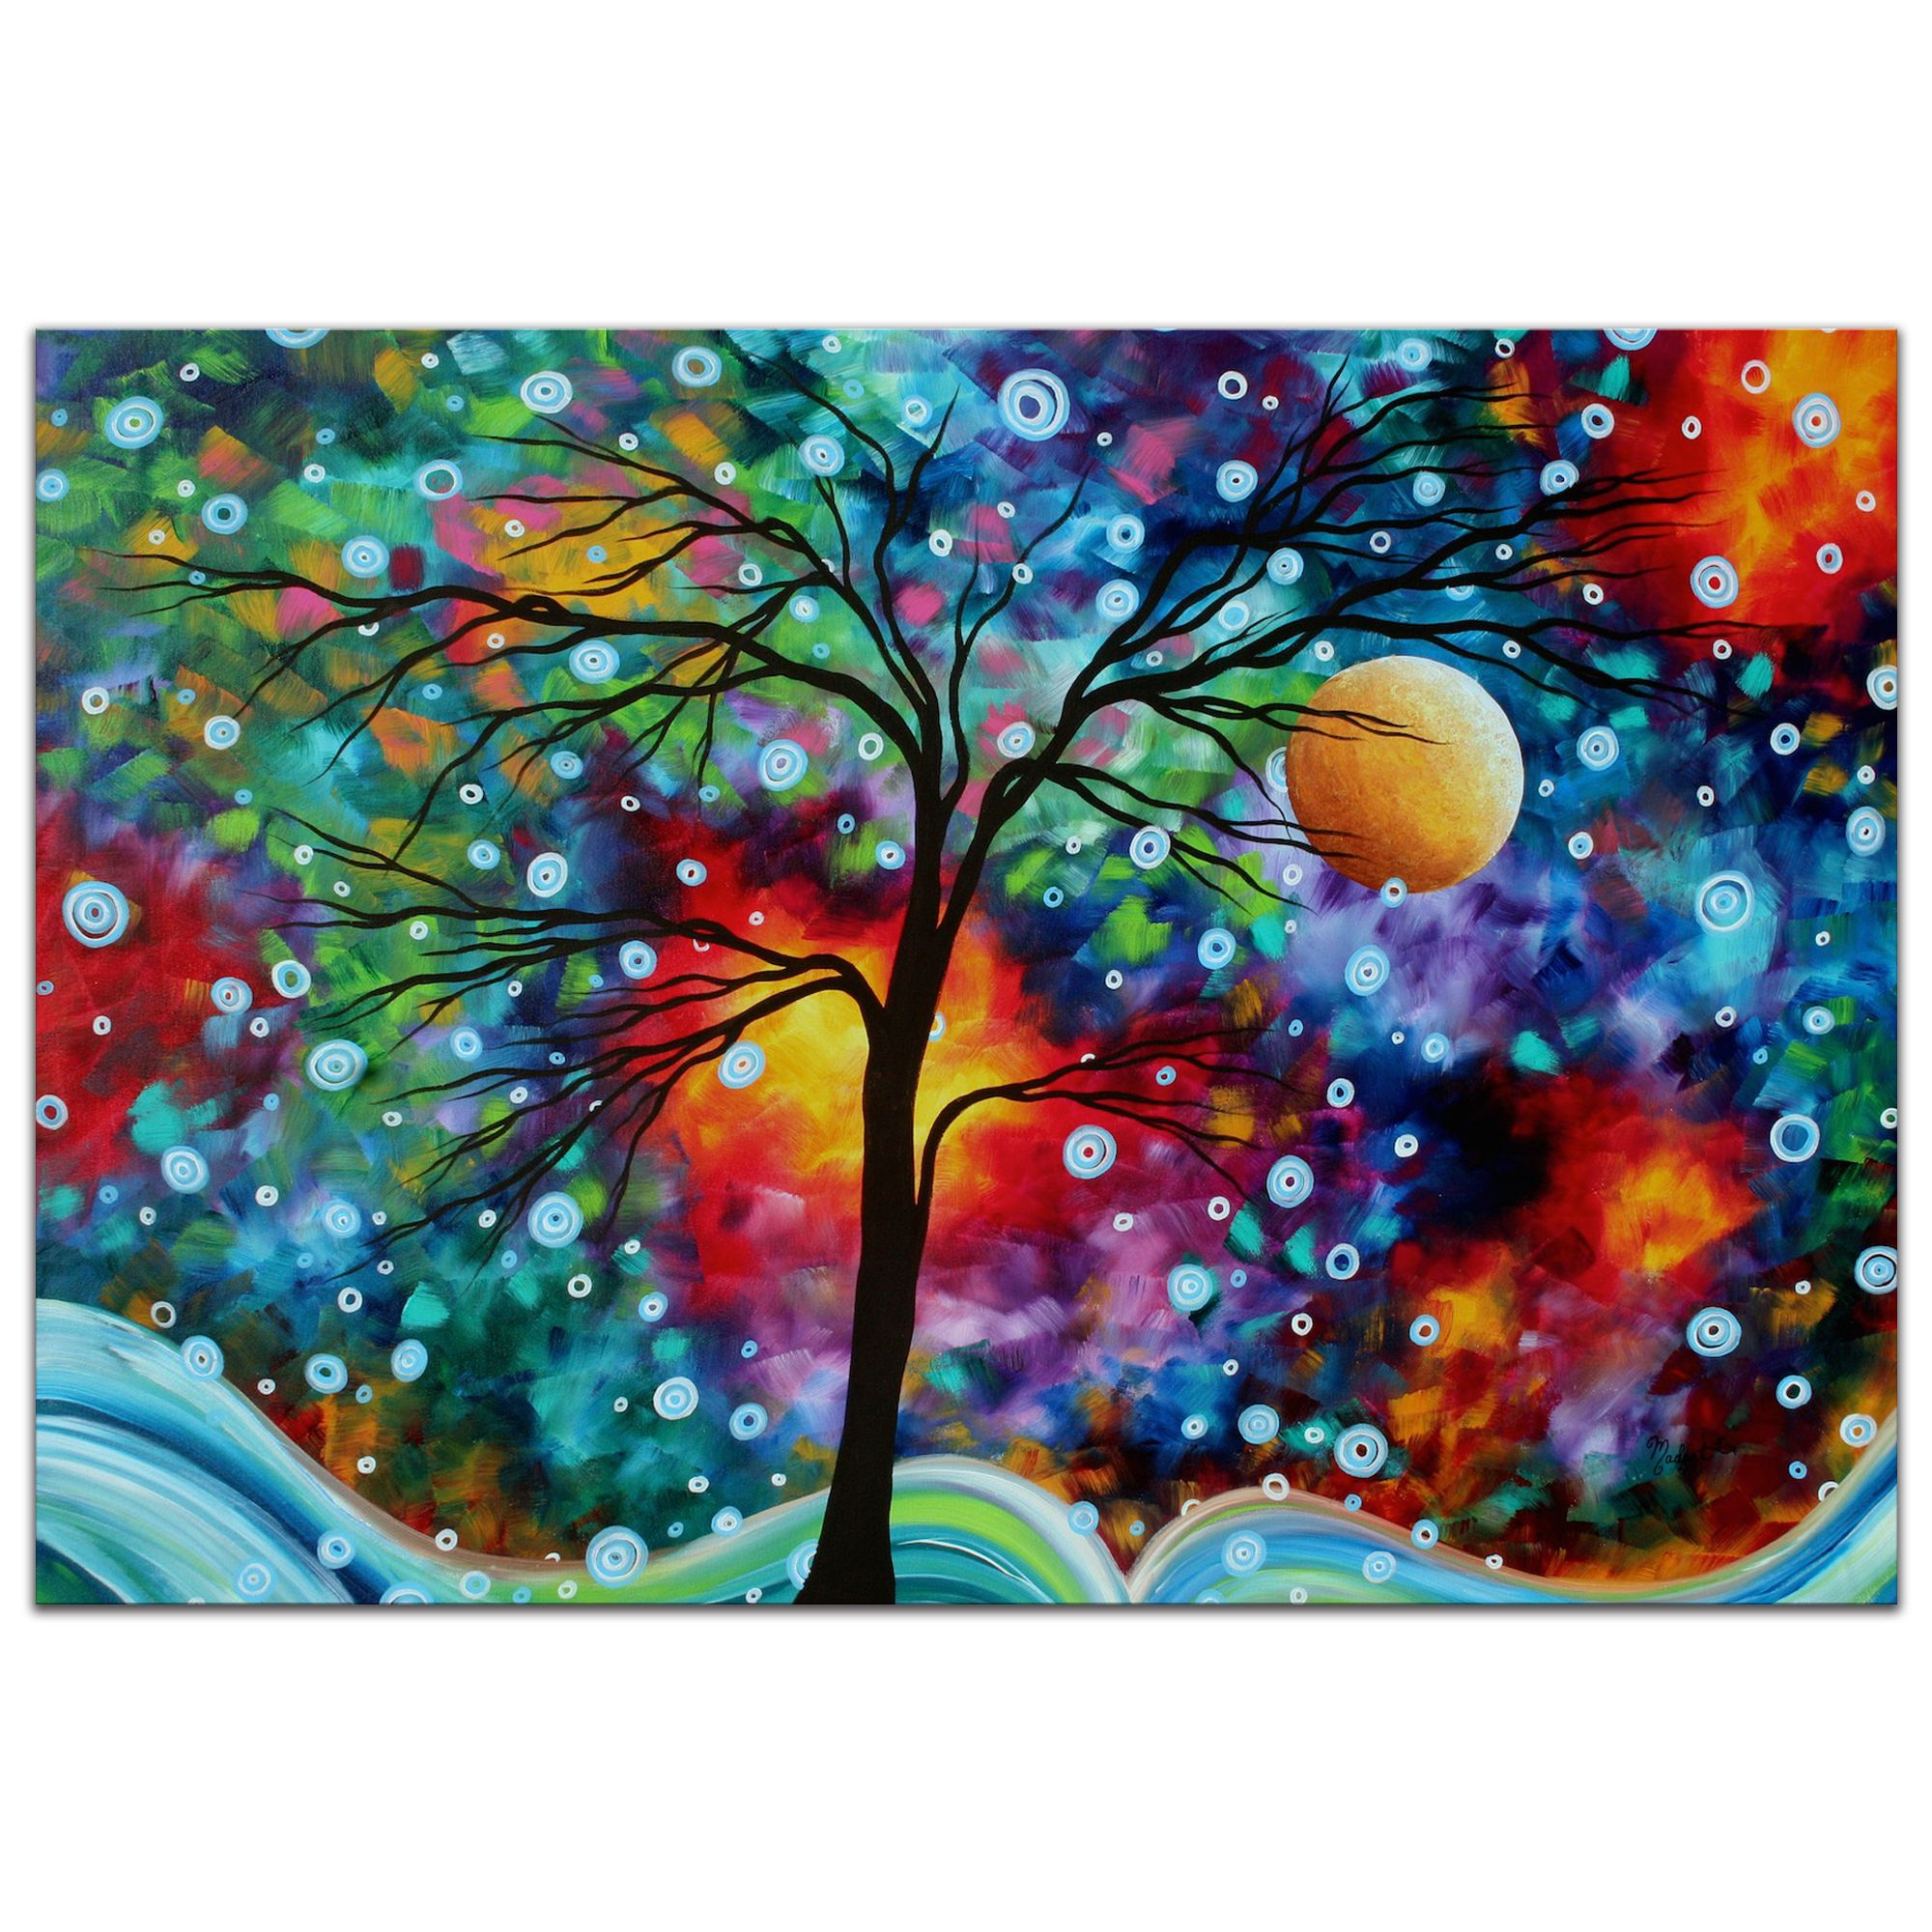 Whimsical Tree Art A Moment In Time Colorful Abstract Landscape Fantasy Trees Rainbow Metal Painting Giclee By Megan Duncanson 206974 Paintings For Sale Colorful Landscape Paintings Whimsical Art Tree Art